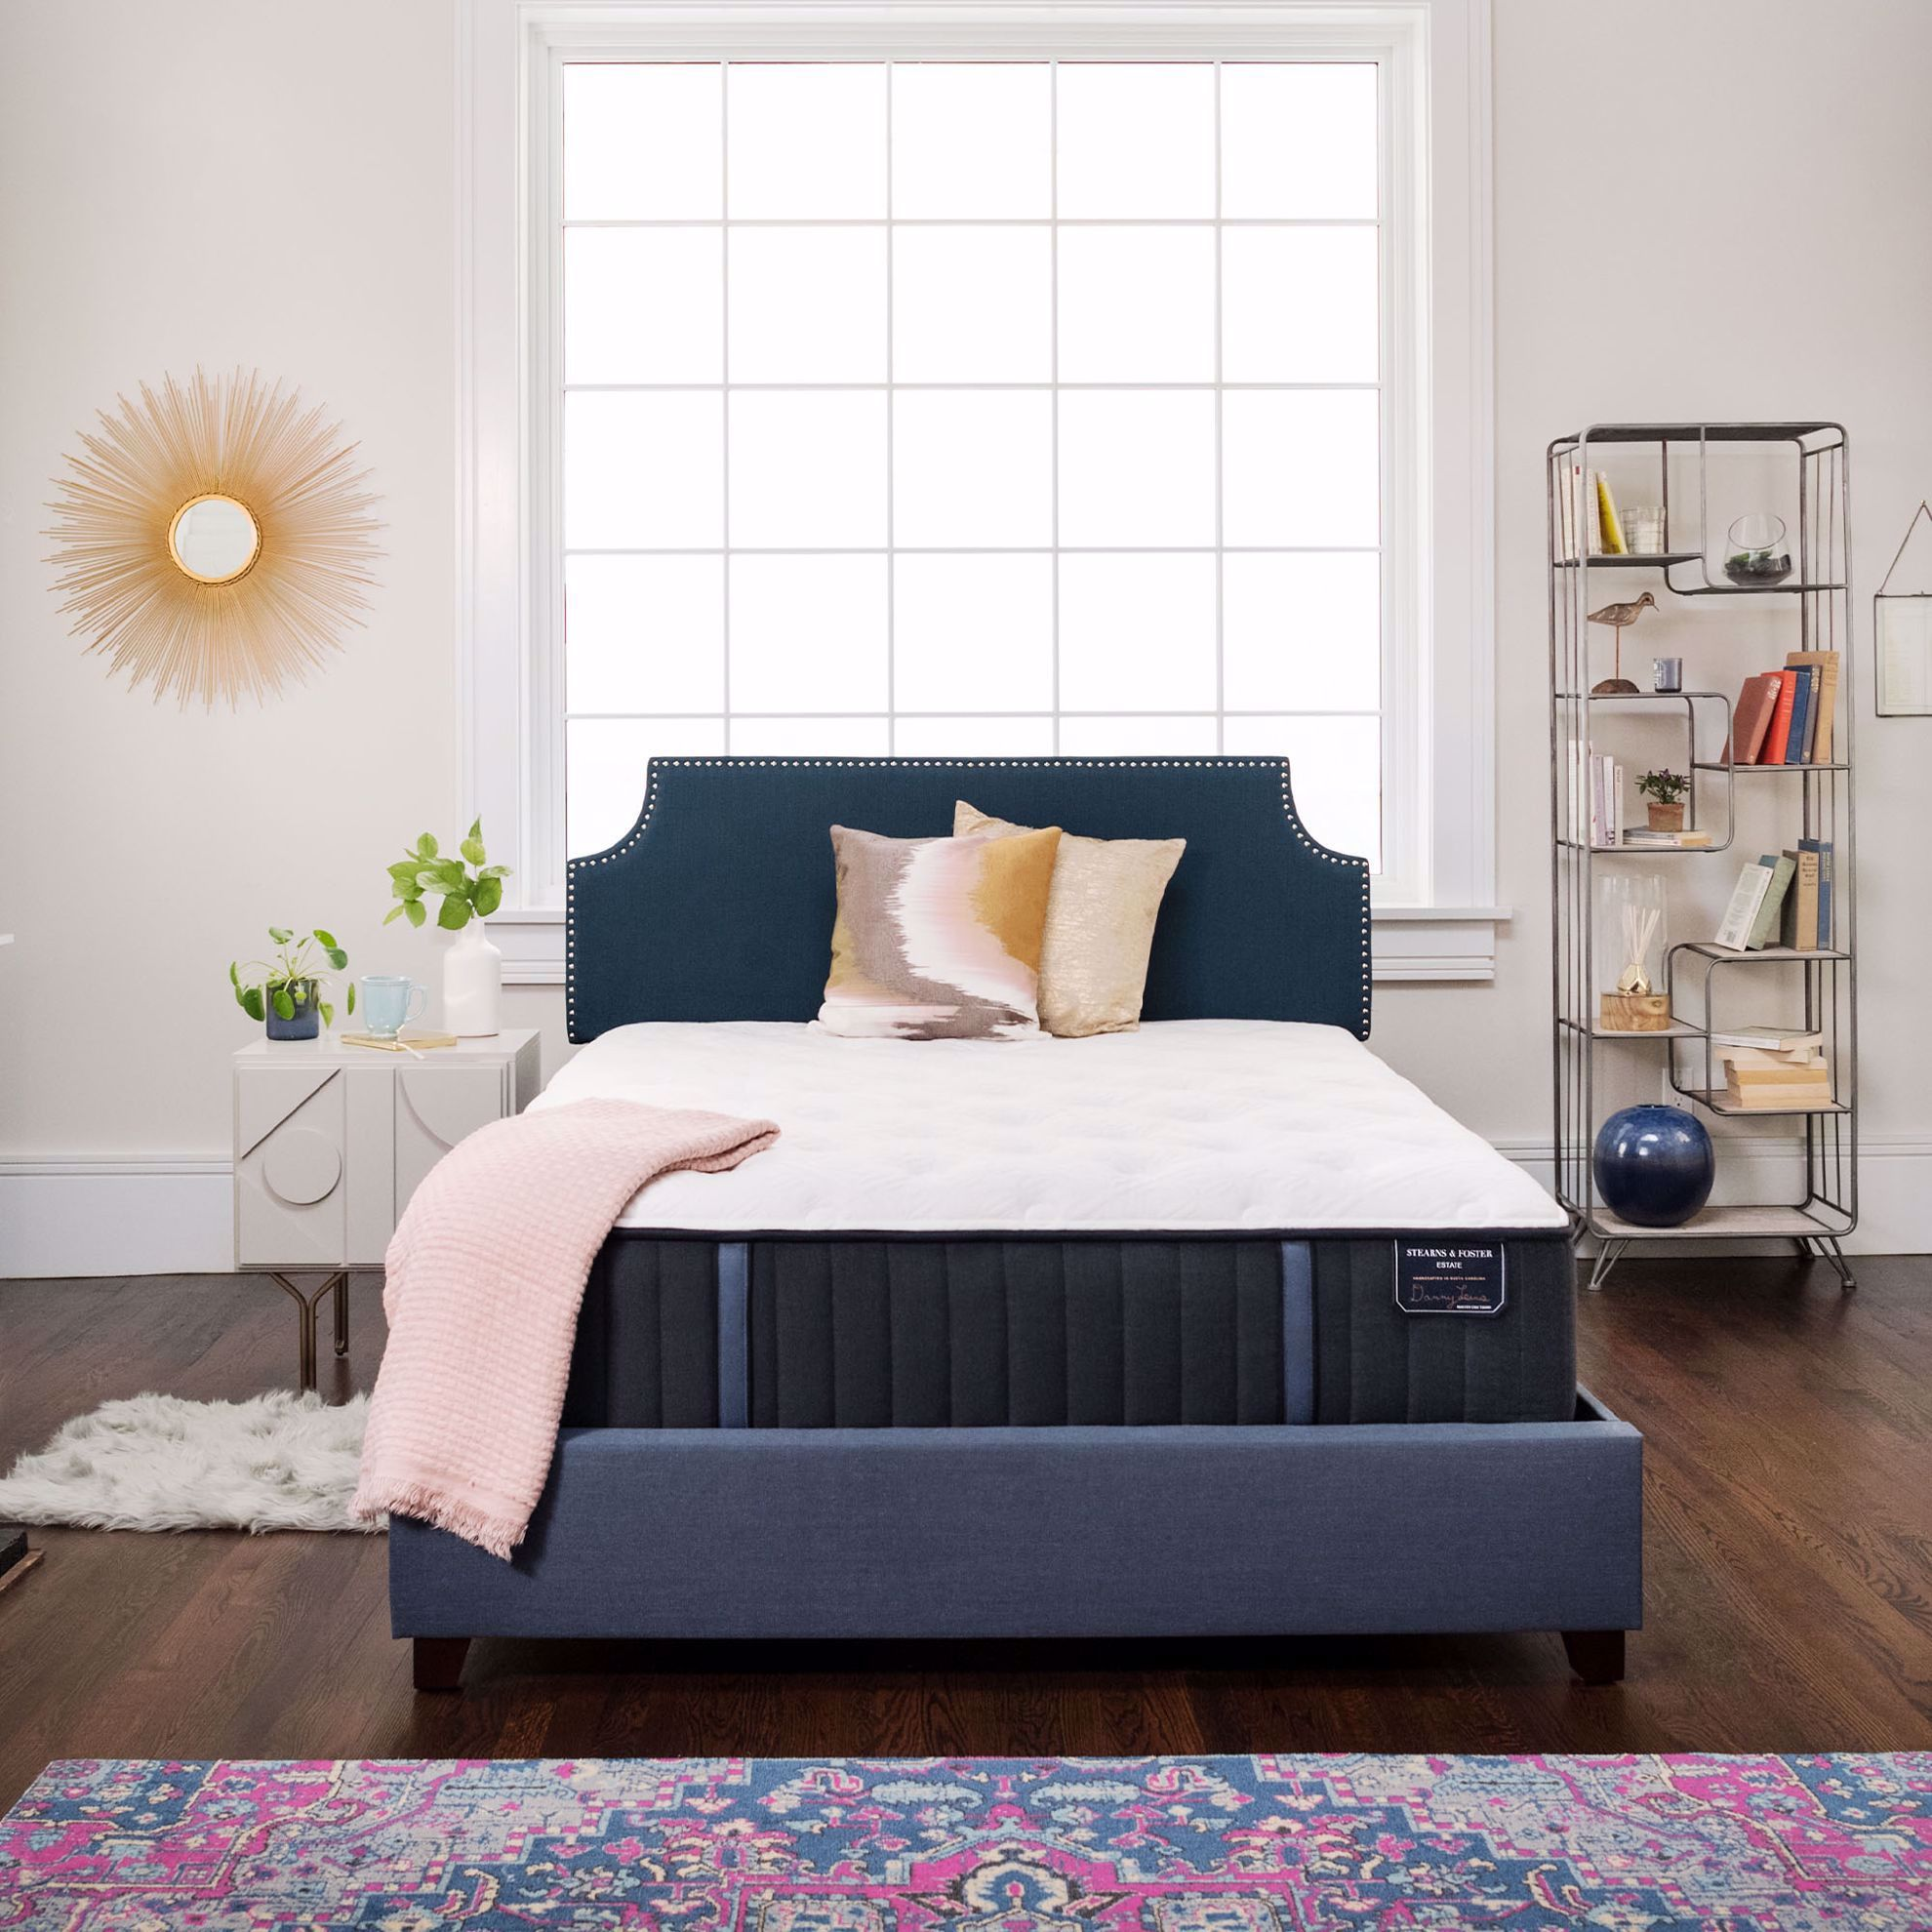 Picture of Stearns and Foster Hurston Luxury Cushion Firm King Mattress